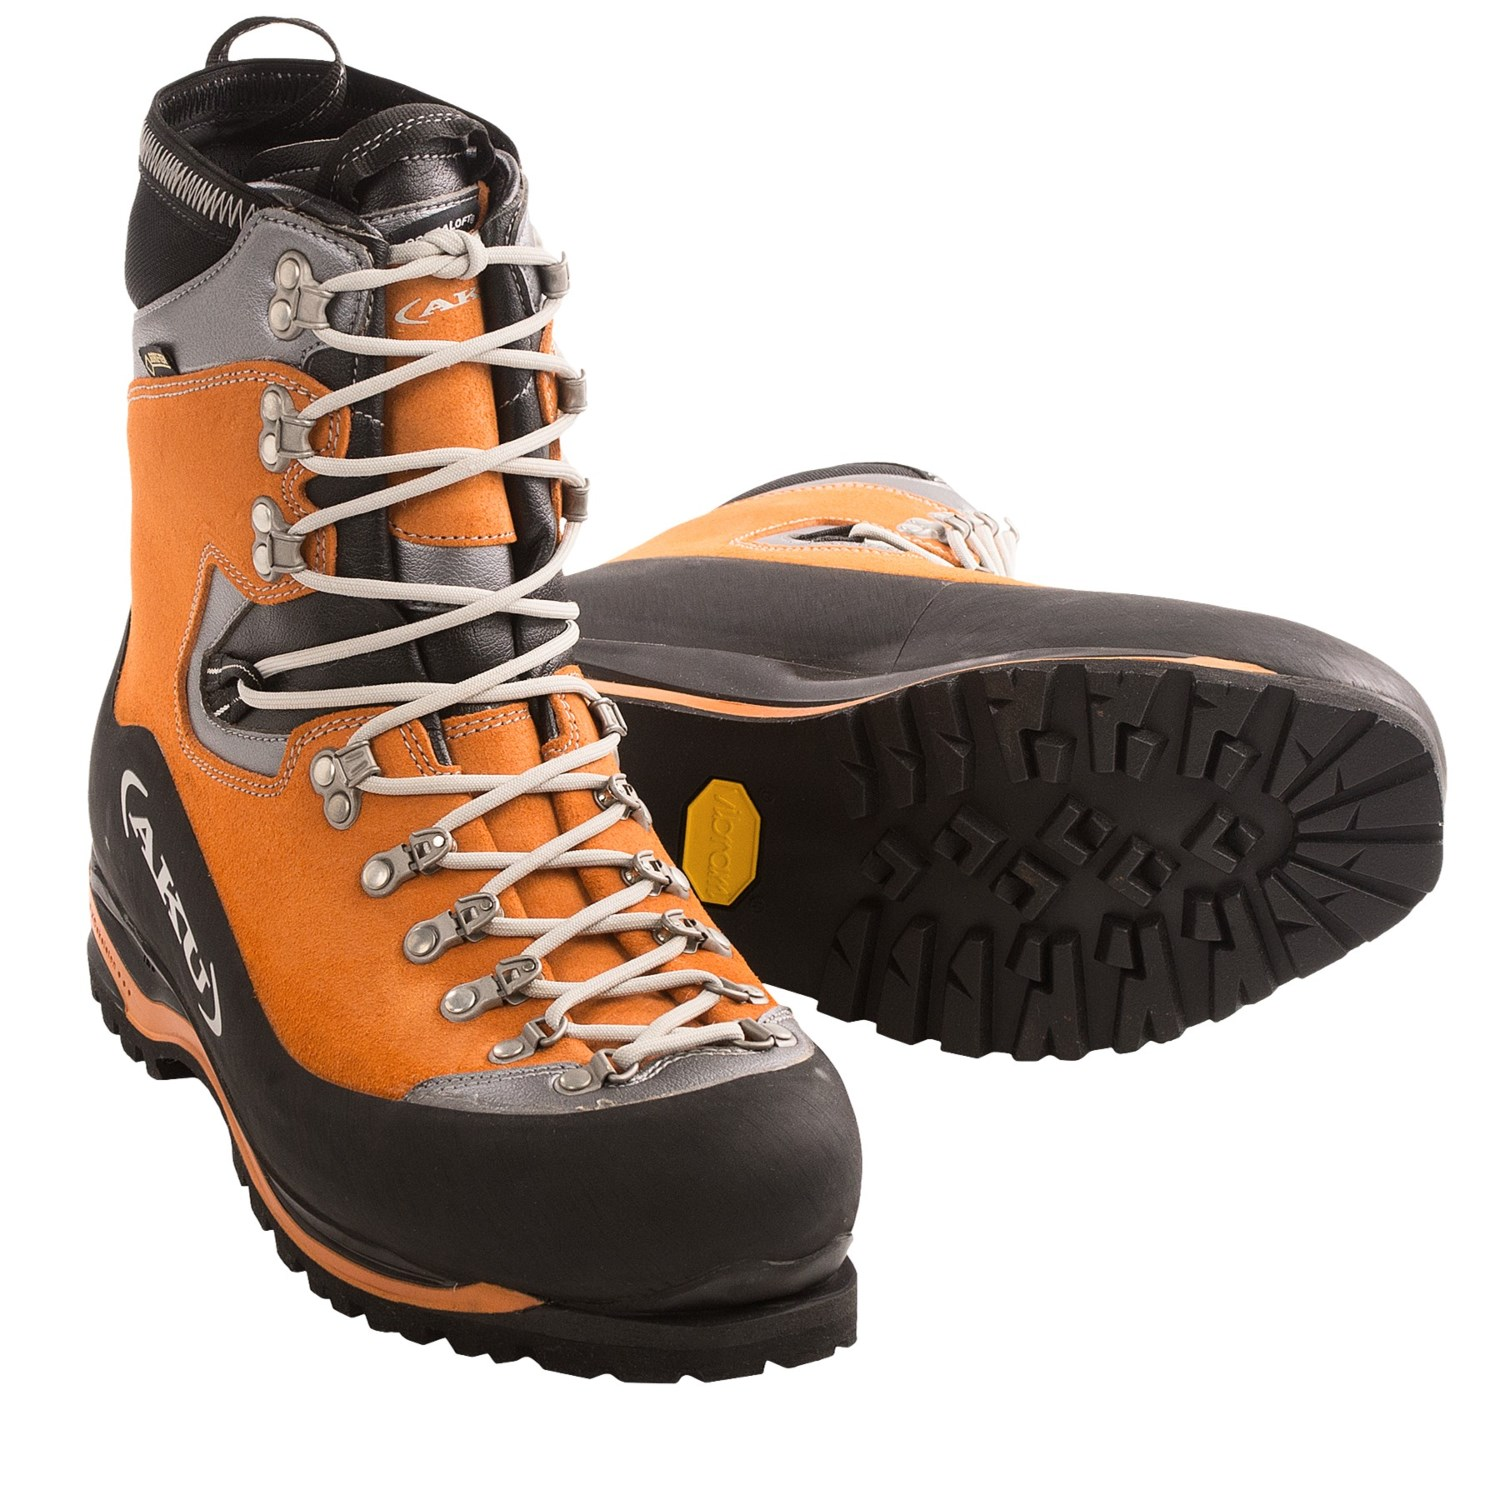 AKU Terrealte Gore-Tex® Mountaineering Boots (For Men) - Save 47%